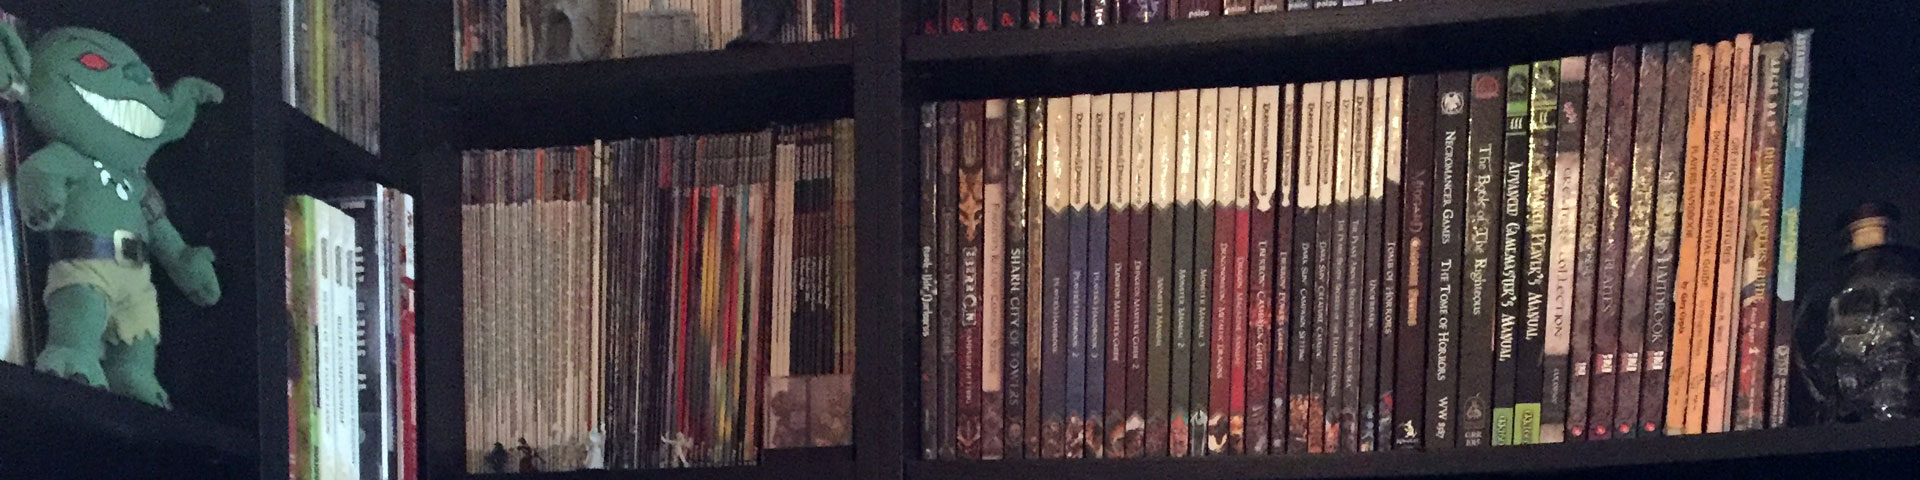 A variety of role-playing games (and one Pathfinder goblin) stand on a black bookshelf.